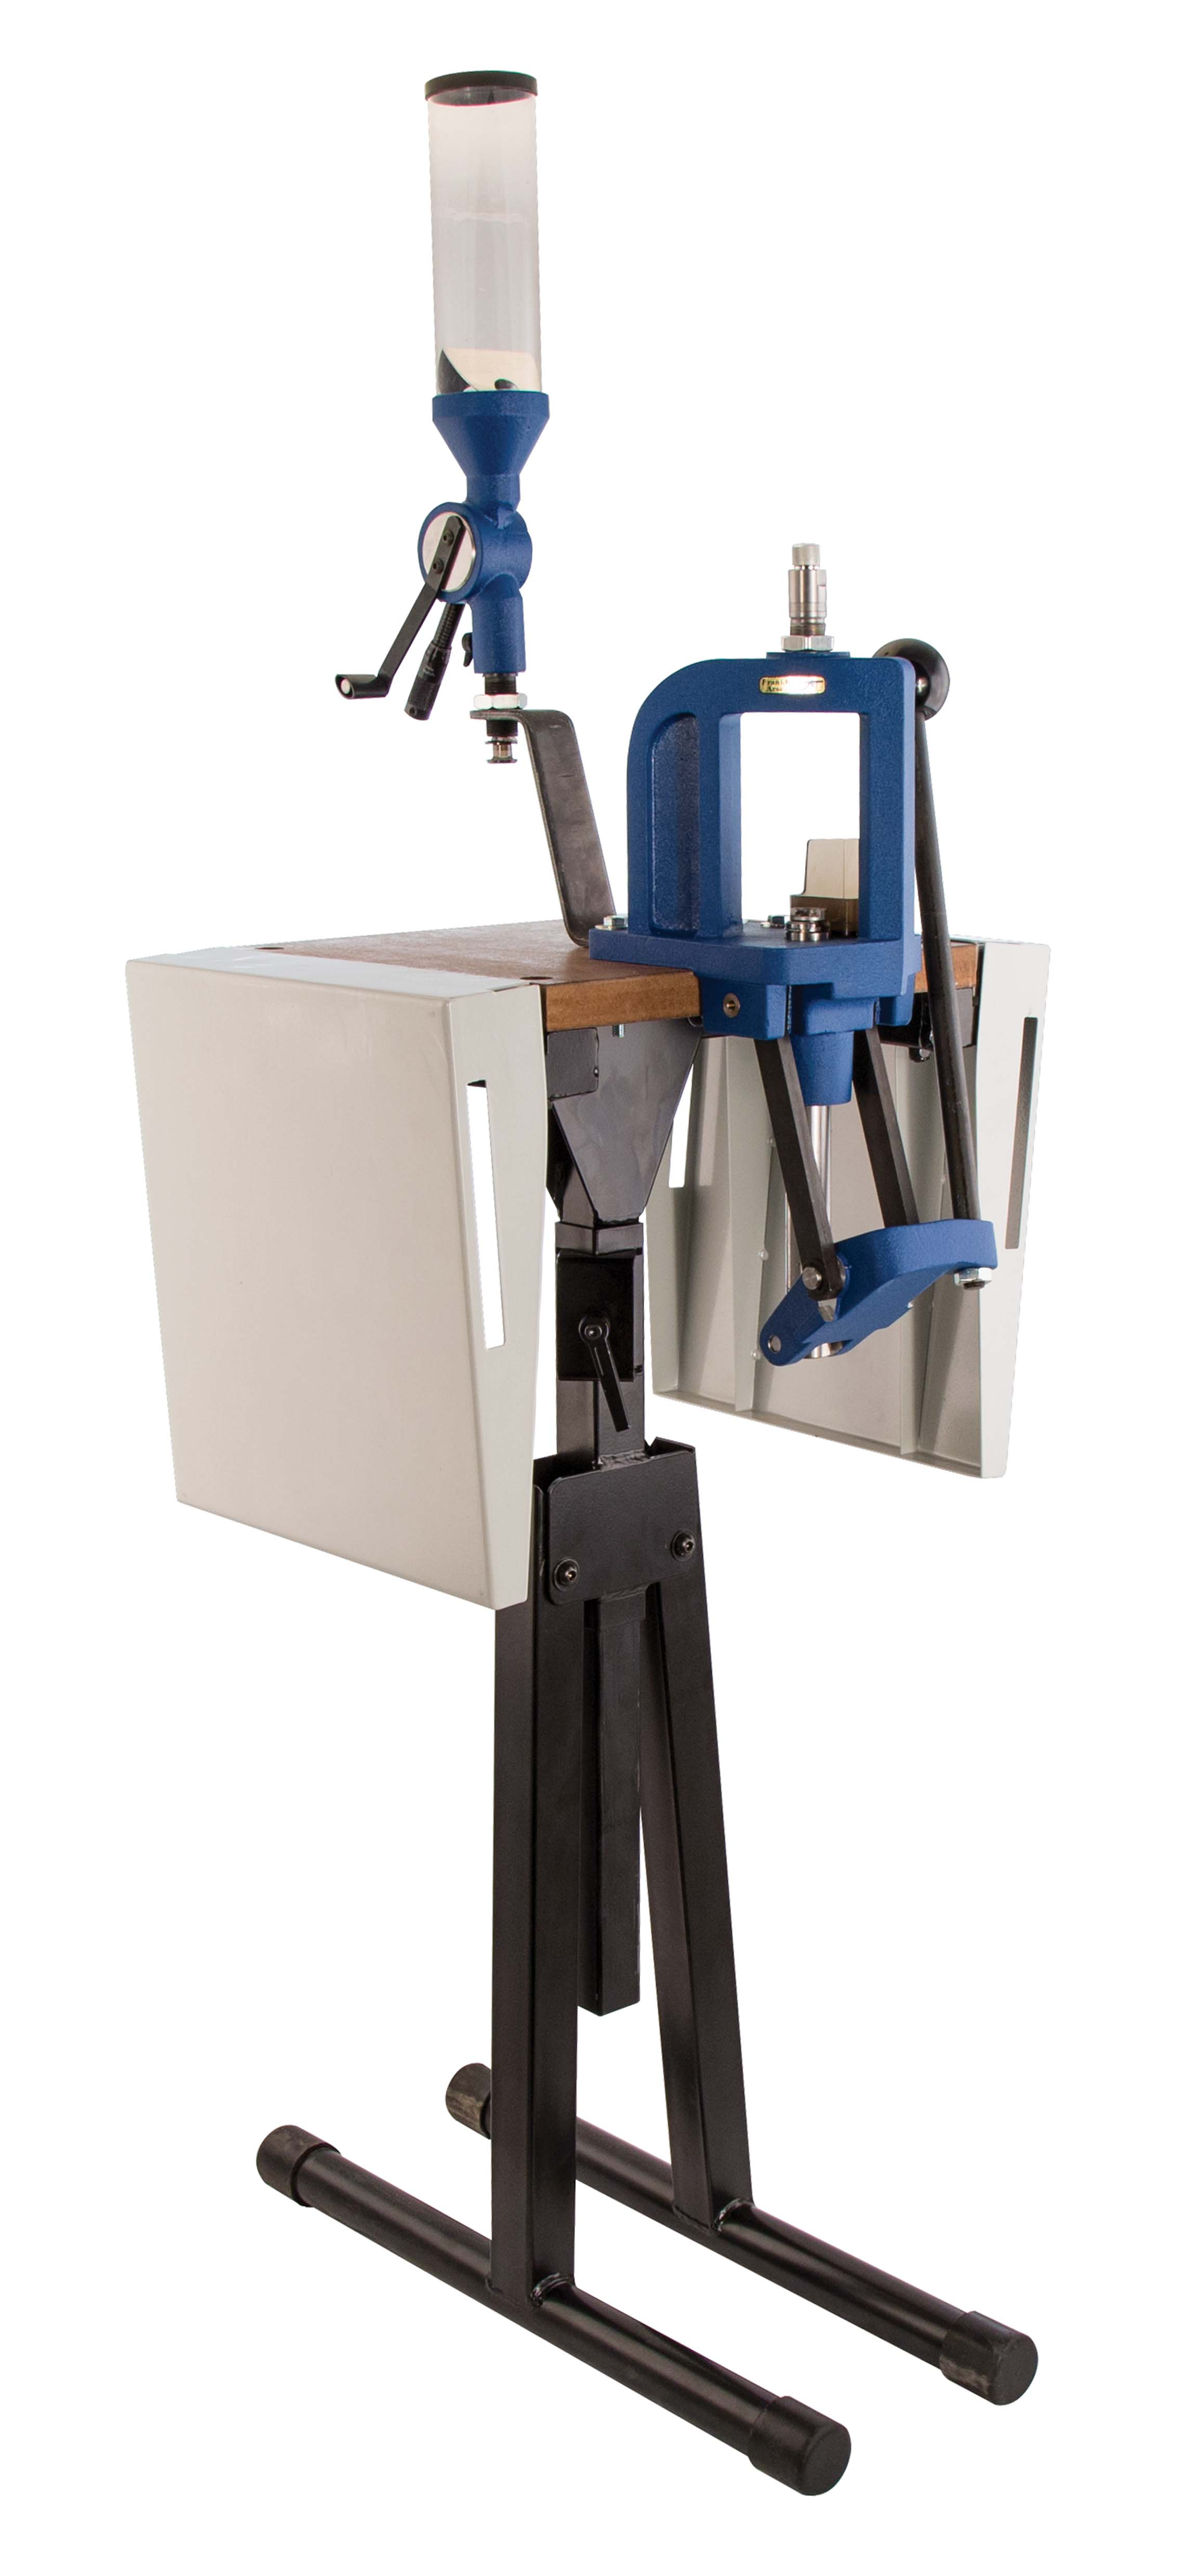 Platinum Series Reloading Stand - 489621 folded up